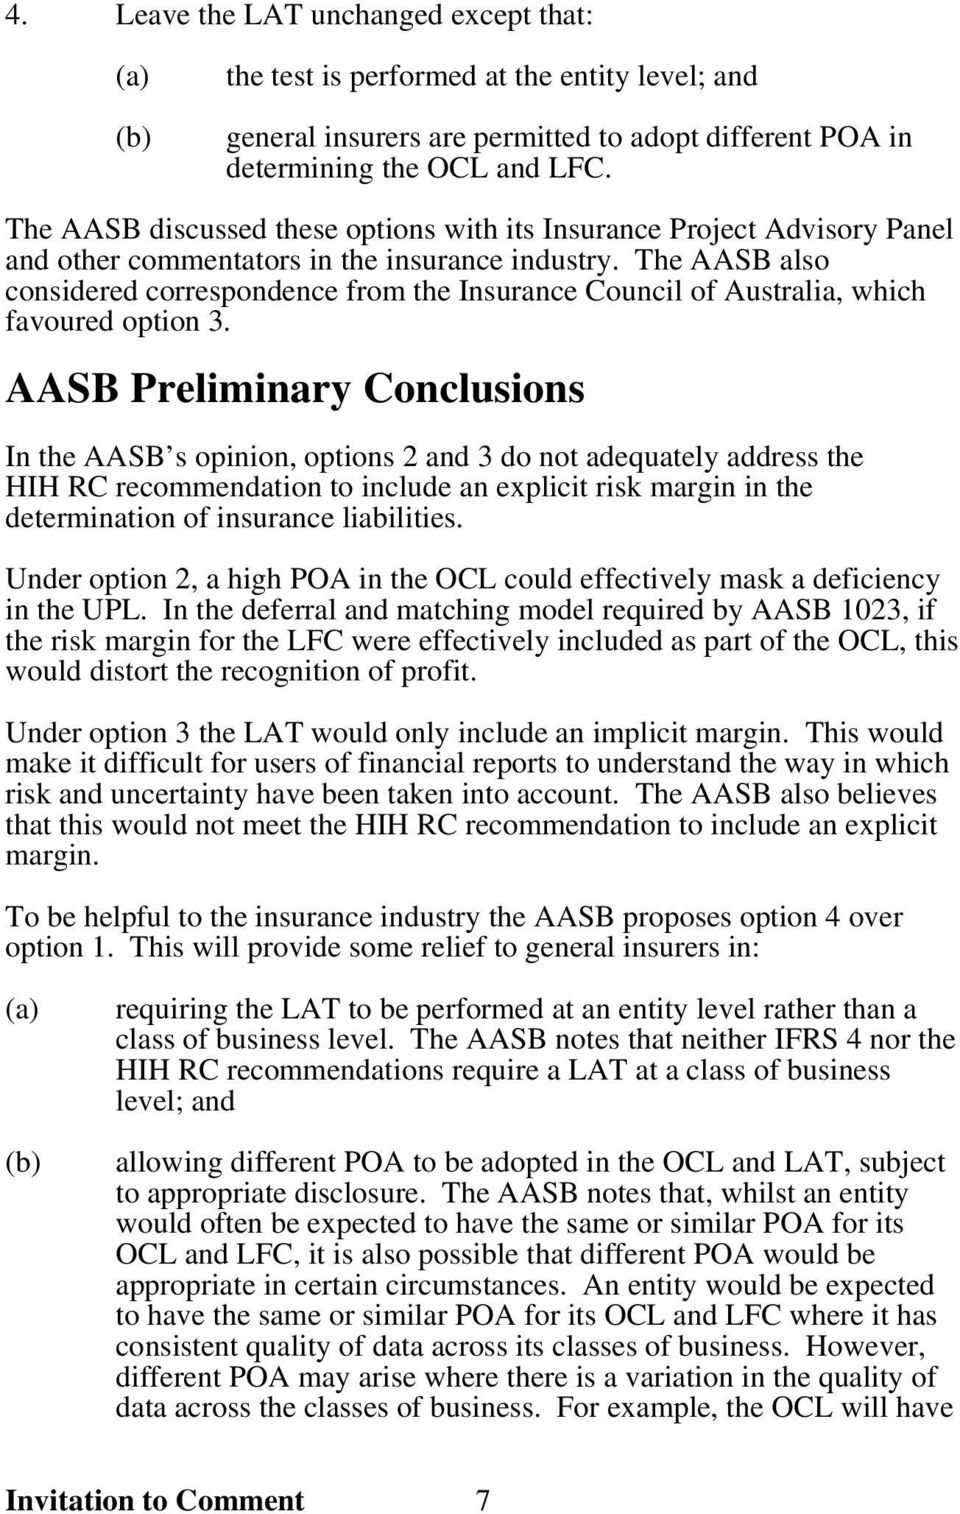 The AASB also considered correspondence from the Insurance Council of Australia, which favoured option 3.